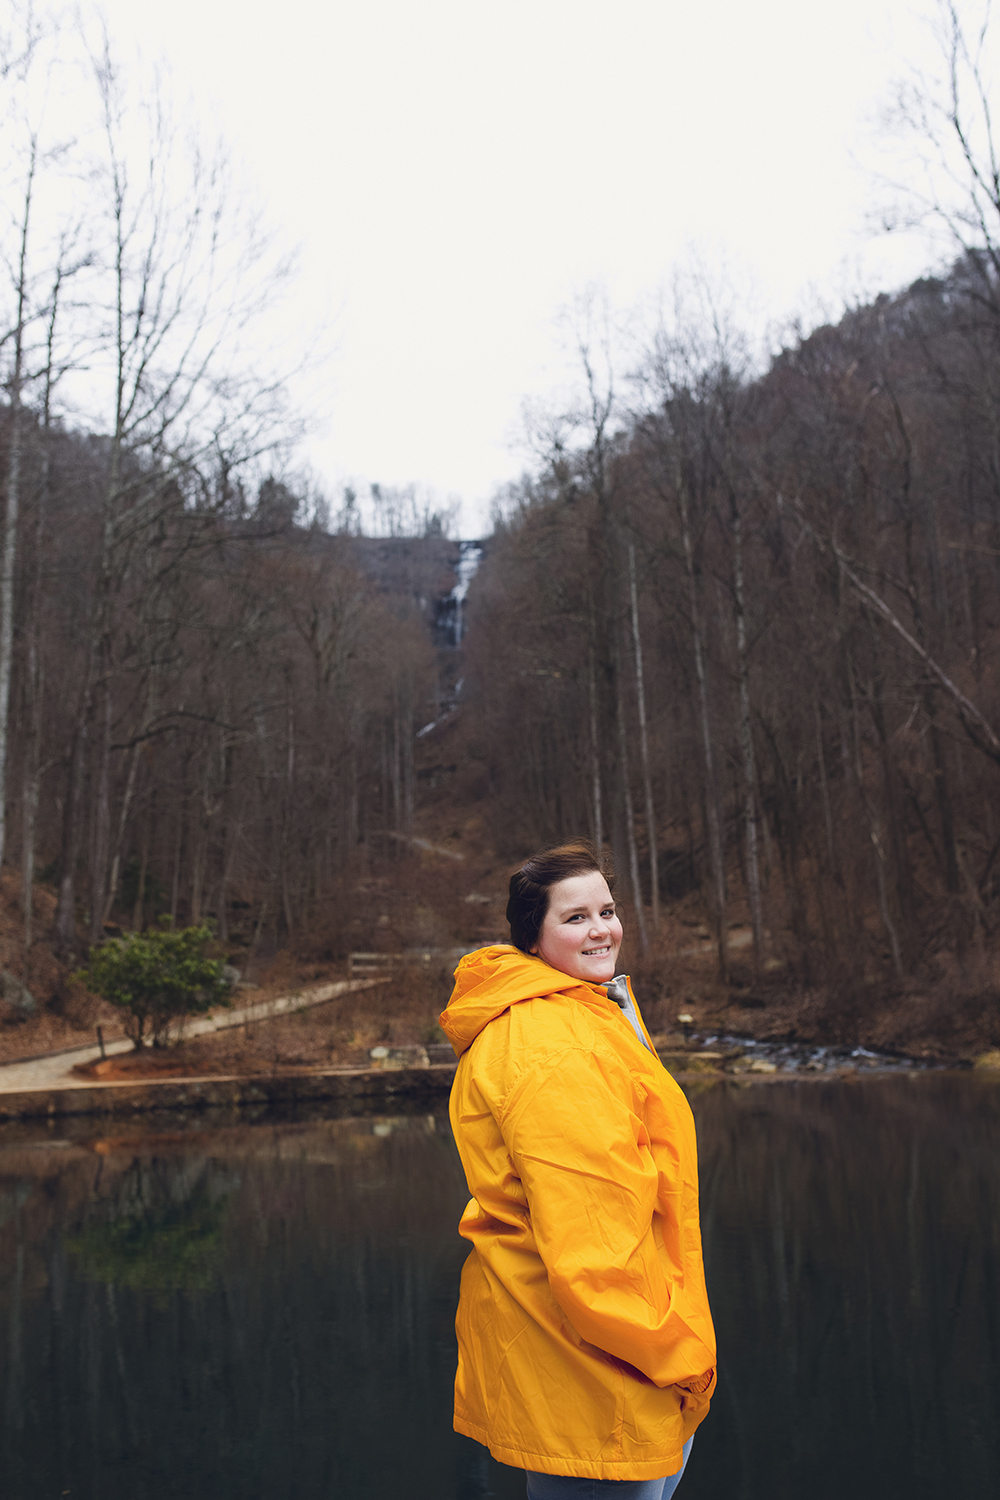 Visiting the tallest waterfall in Georgia at Amicalola Falls in Dawsonville, Georgia